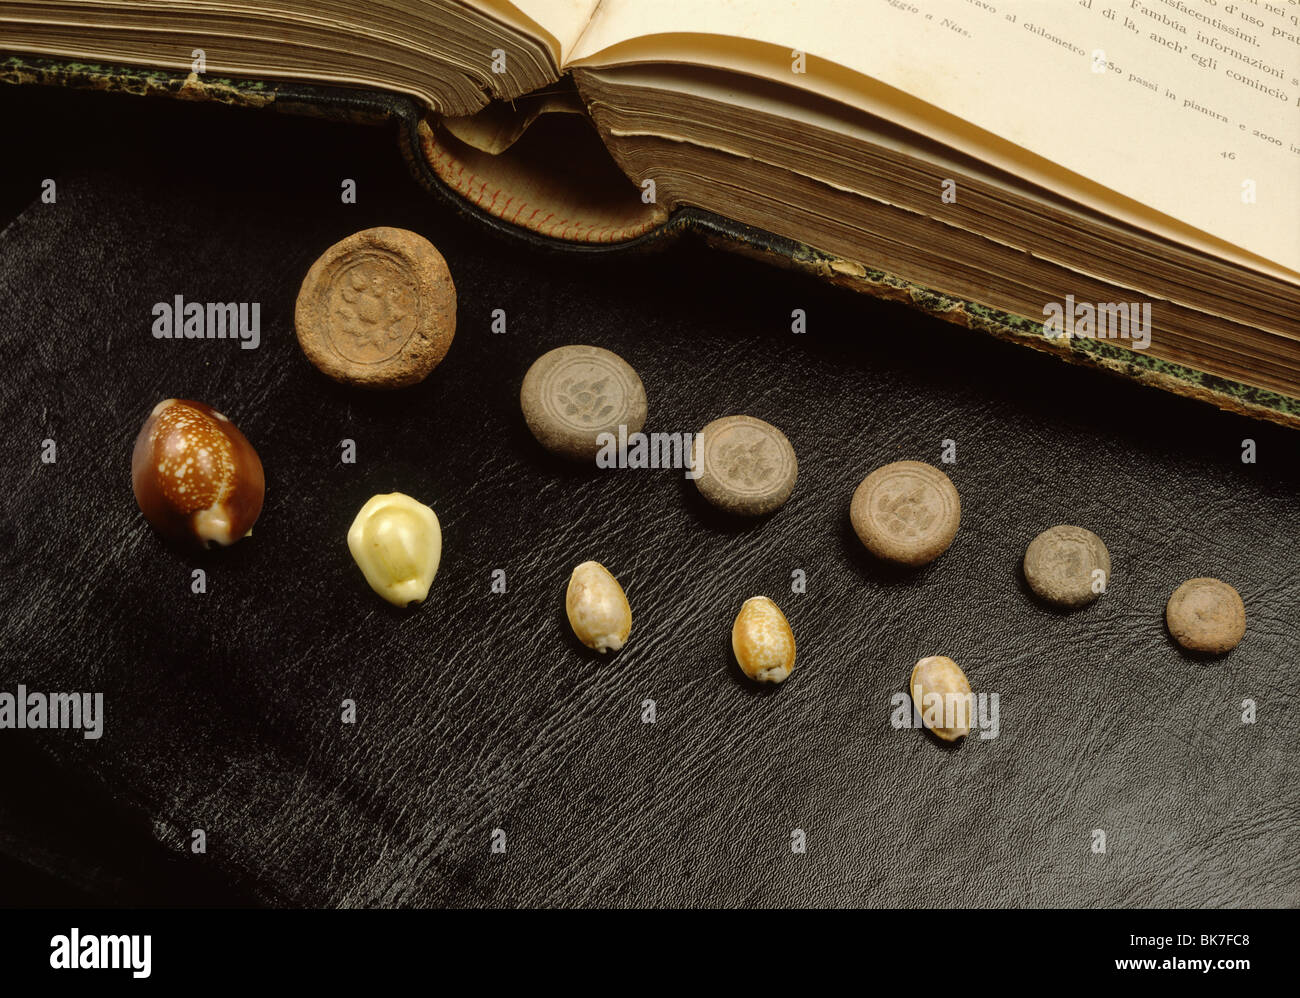 Cowrie shell money and terracota coins from Sri Vijaya period in Thailand, Southeast Asia, Asia - Stock Image